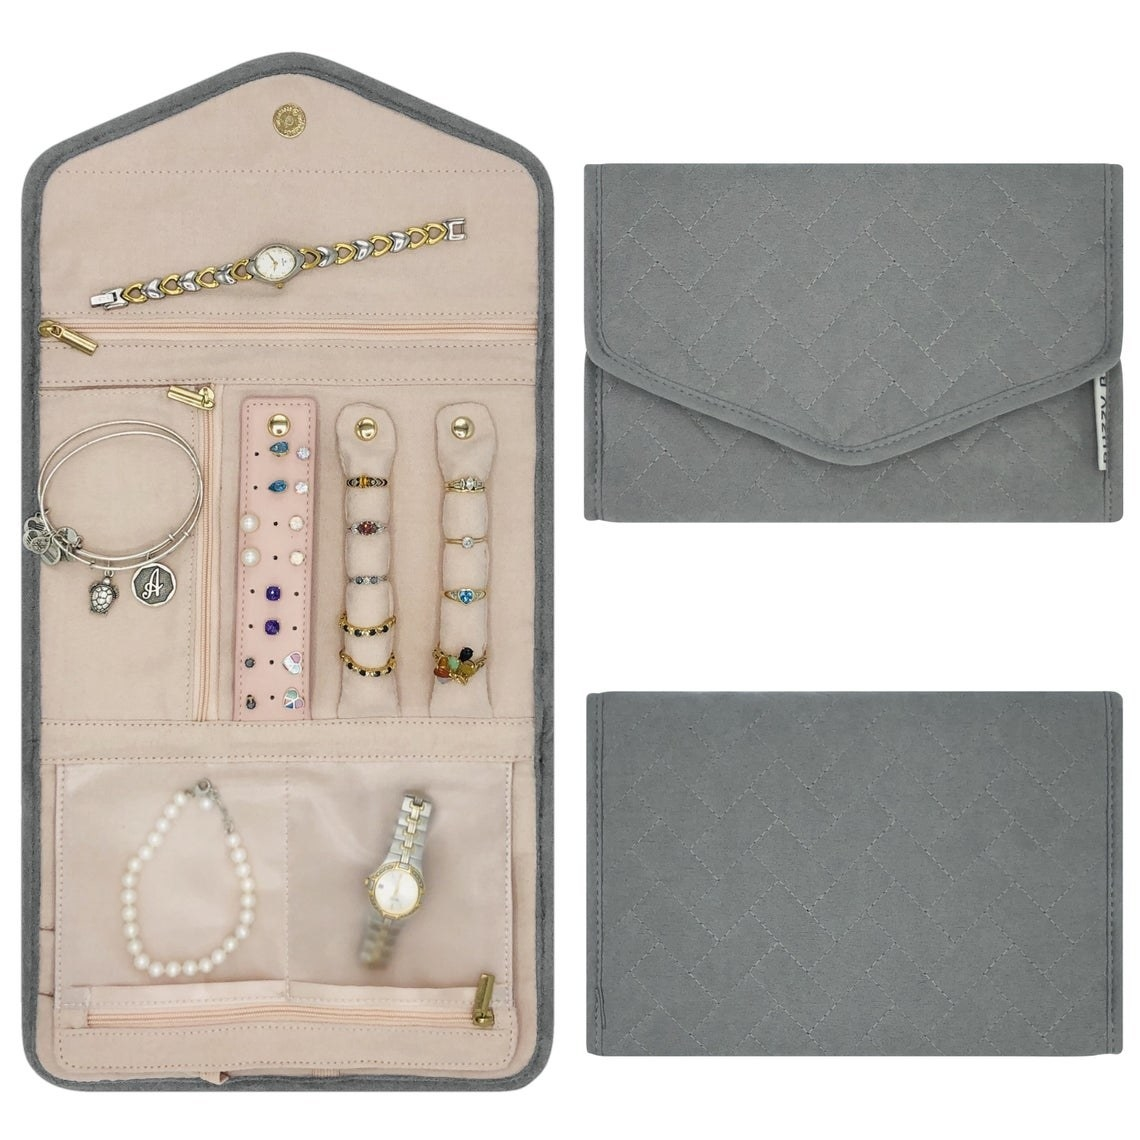 The jewelry case in gray showing what it looks like unfolded and then how compact it is folded